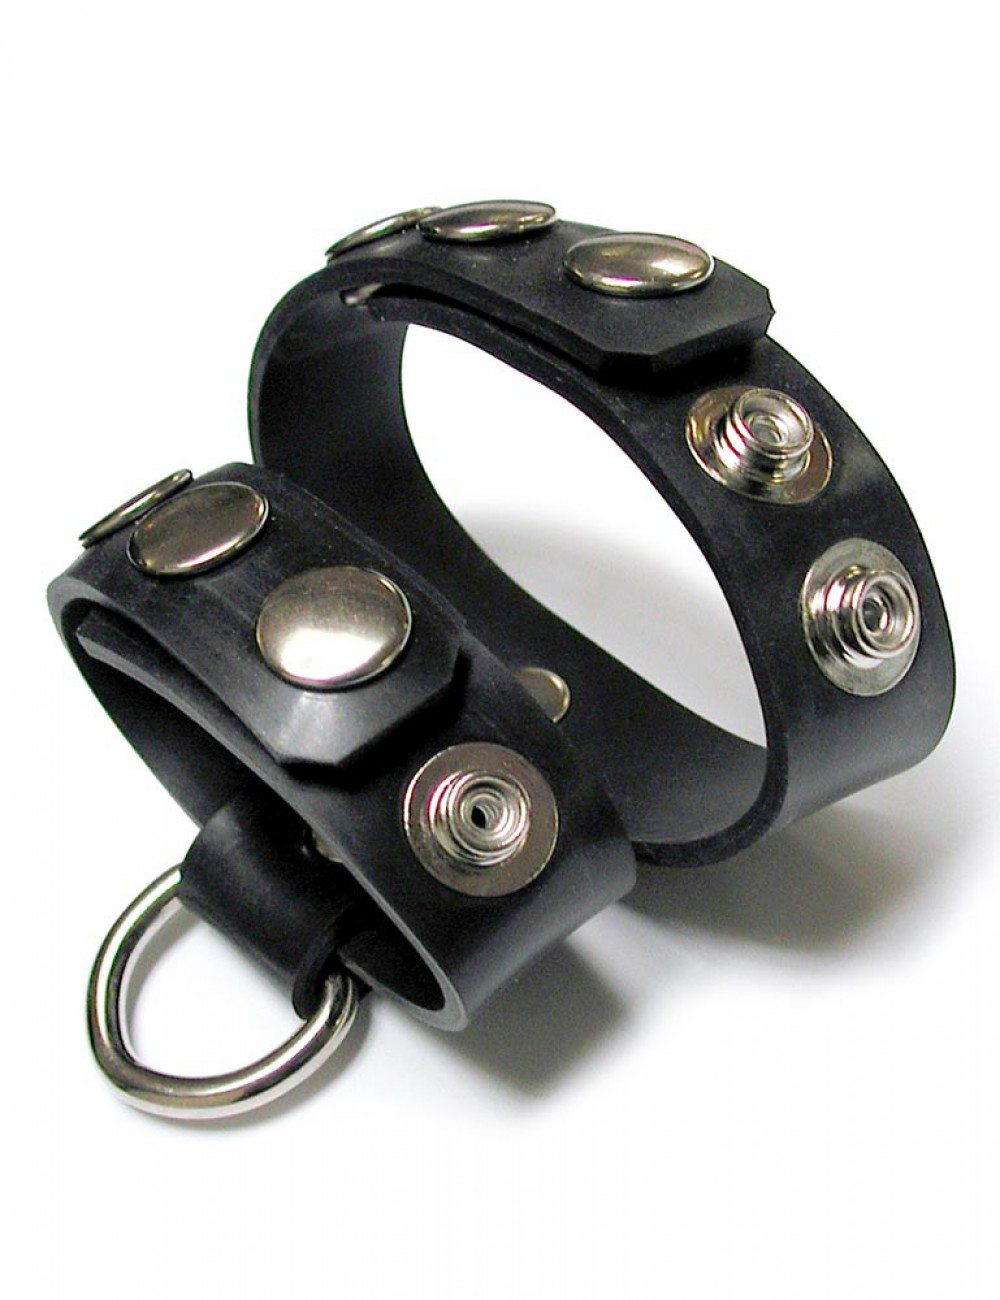 Rubber Cock and Ball Harness